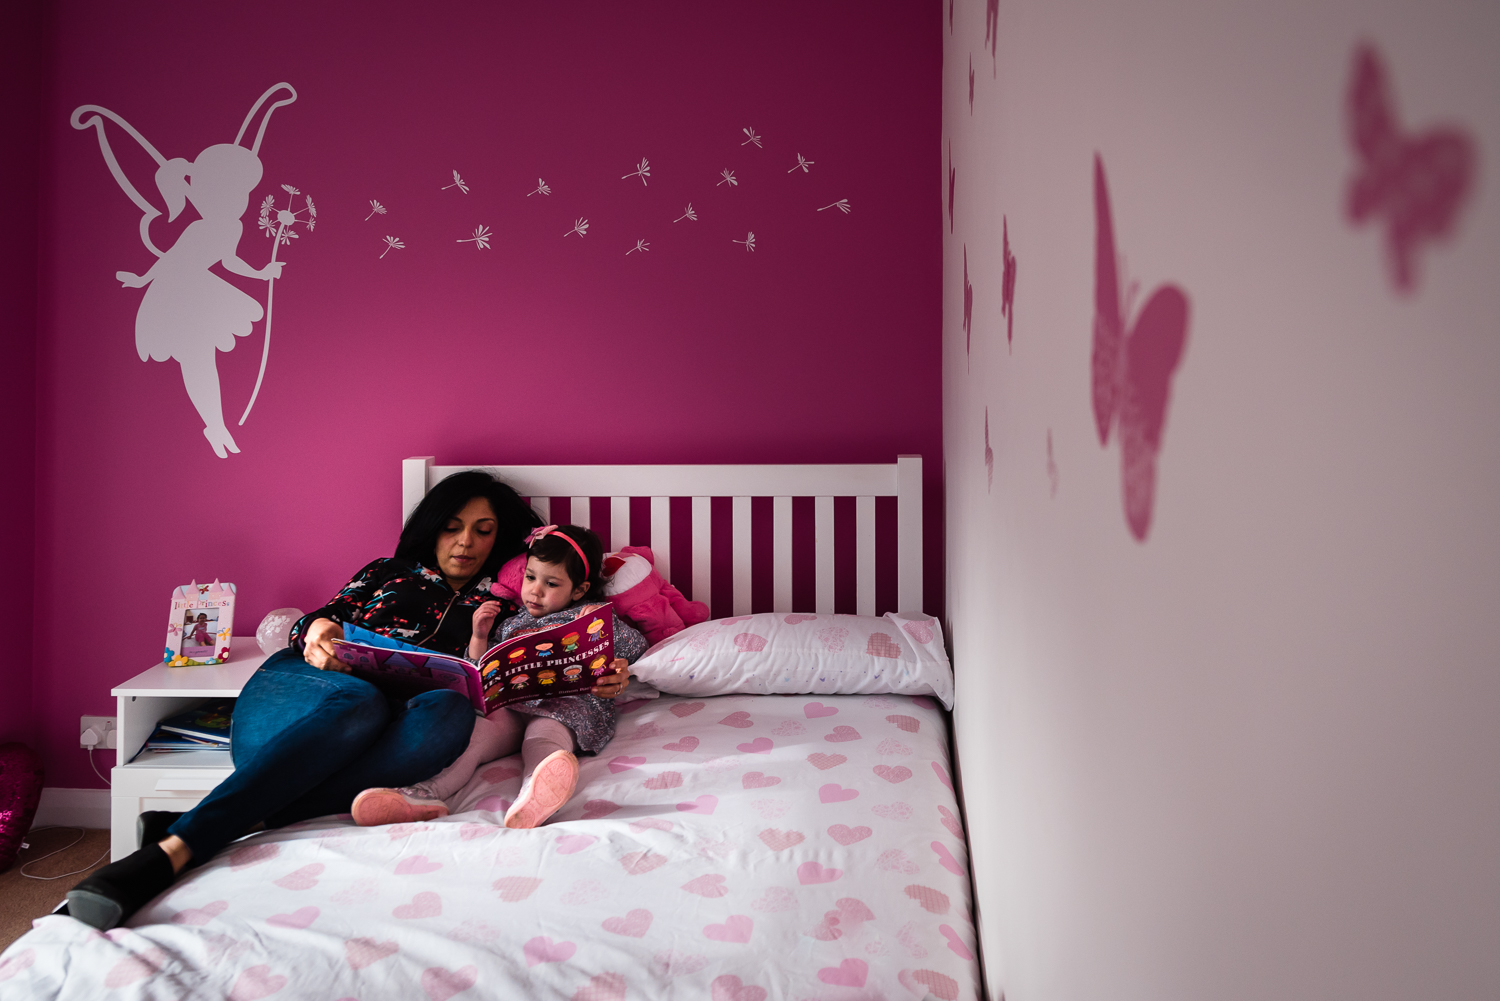 mother reading to child in bed pink walls lifestyle documentary